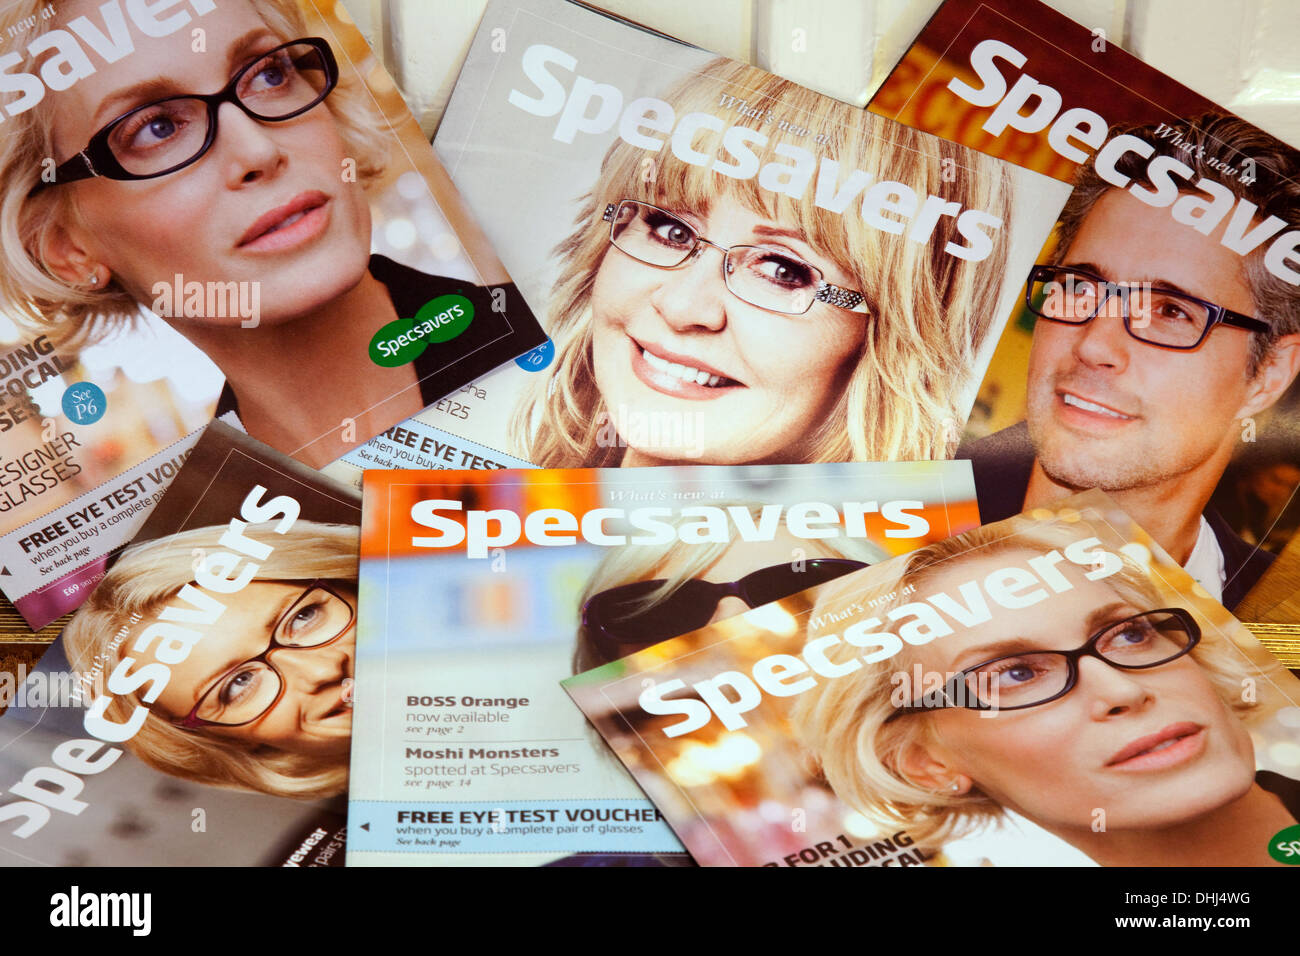 Specsavers - junk mail leaflets , UK - Stock Image